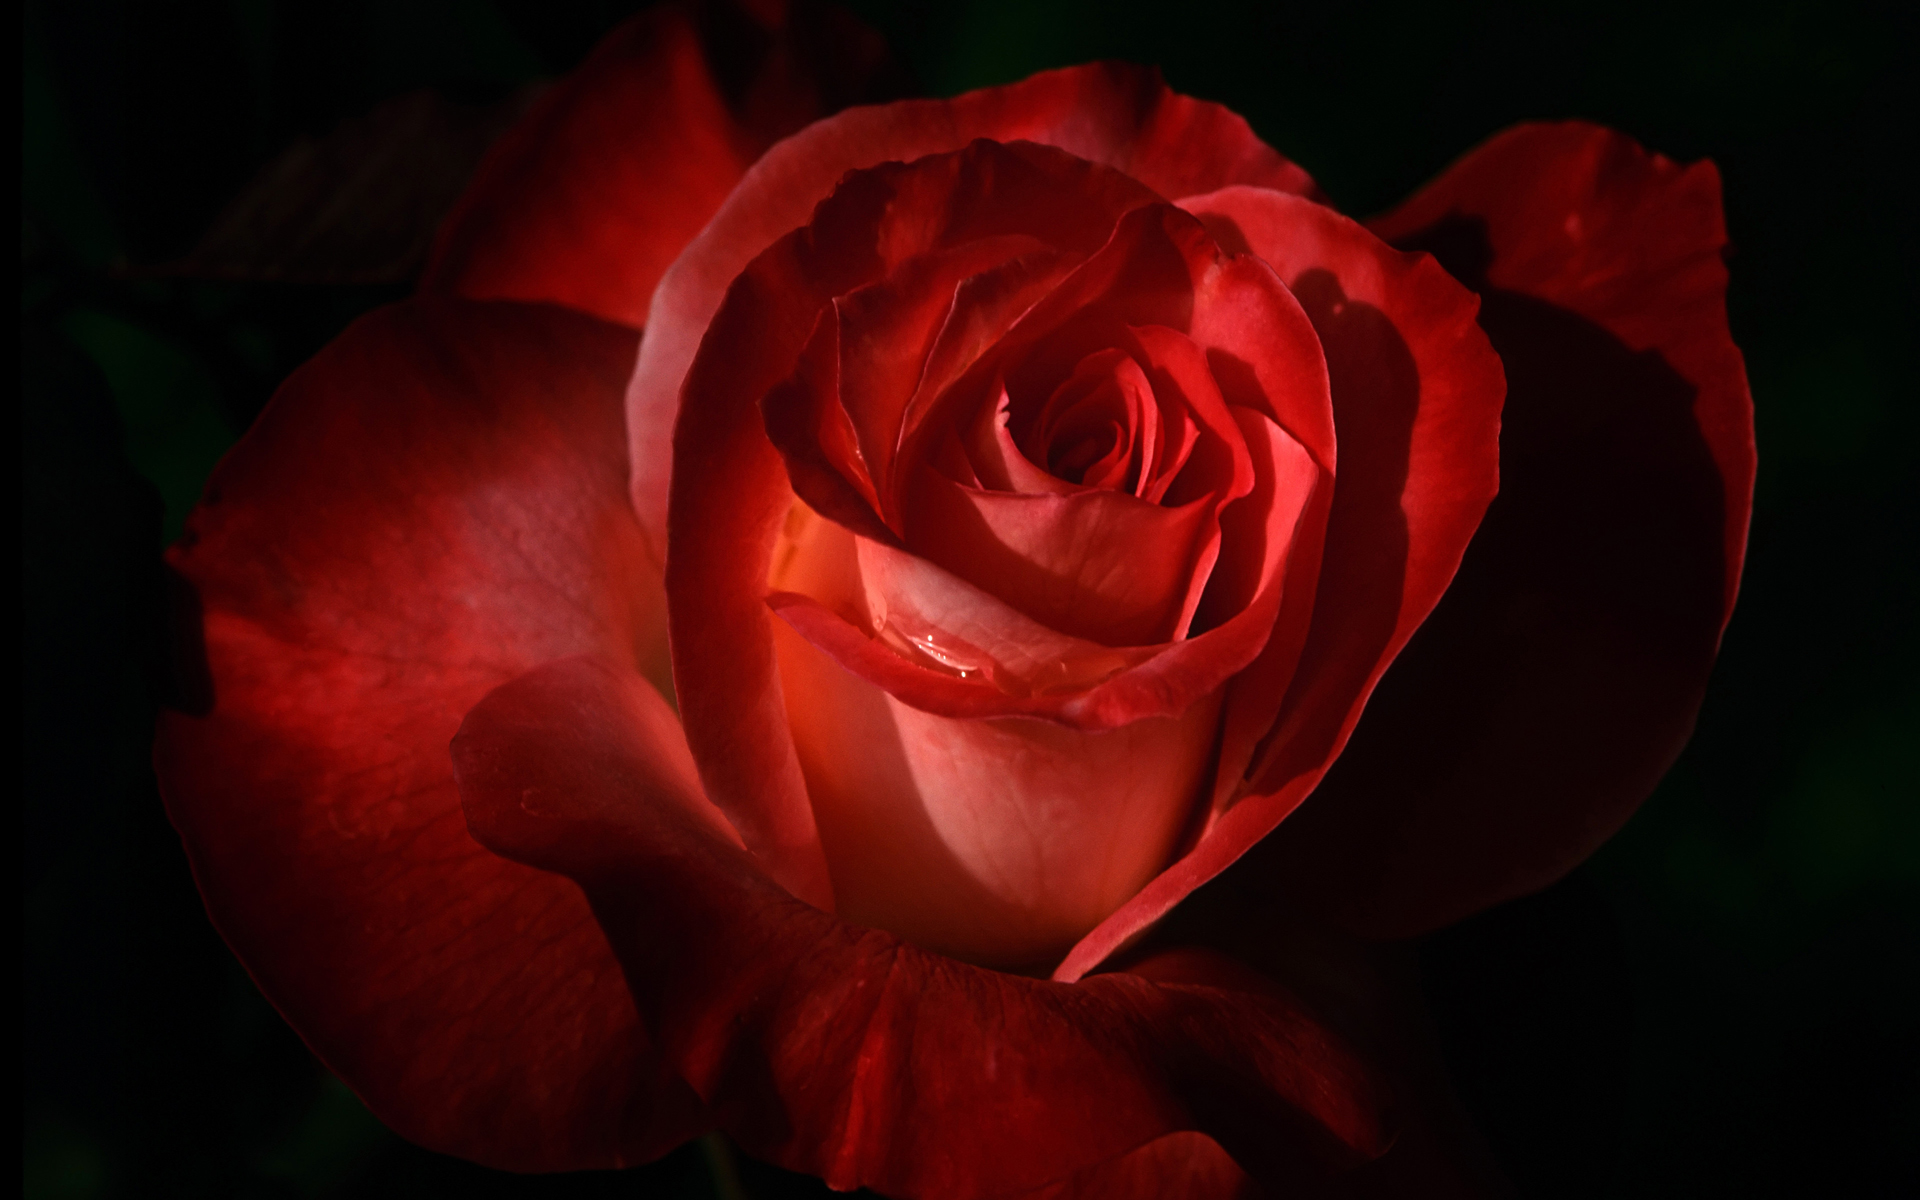 Red Rose 2 237.04 Kb